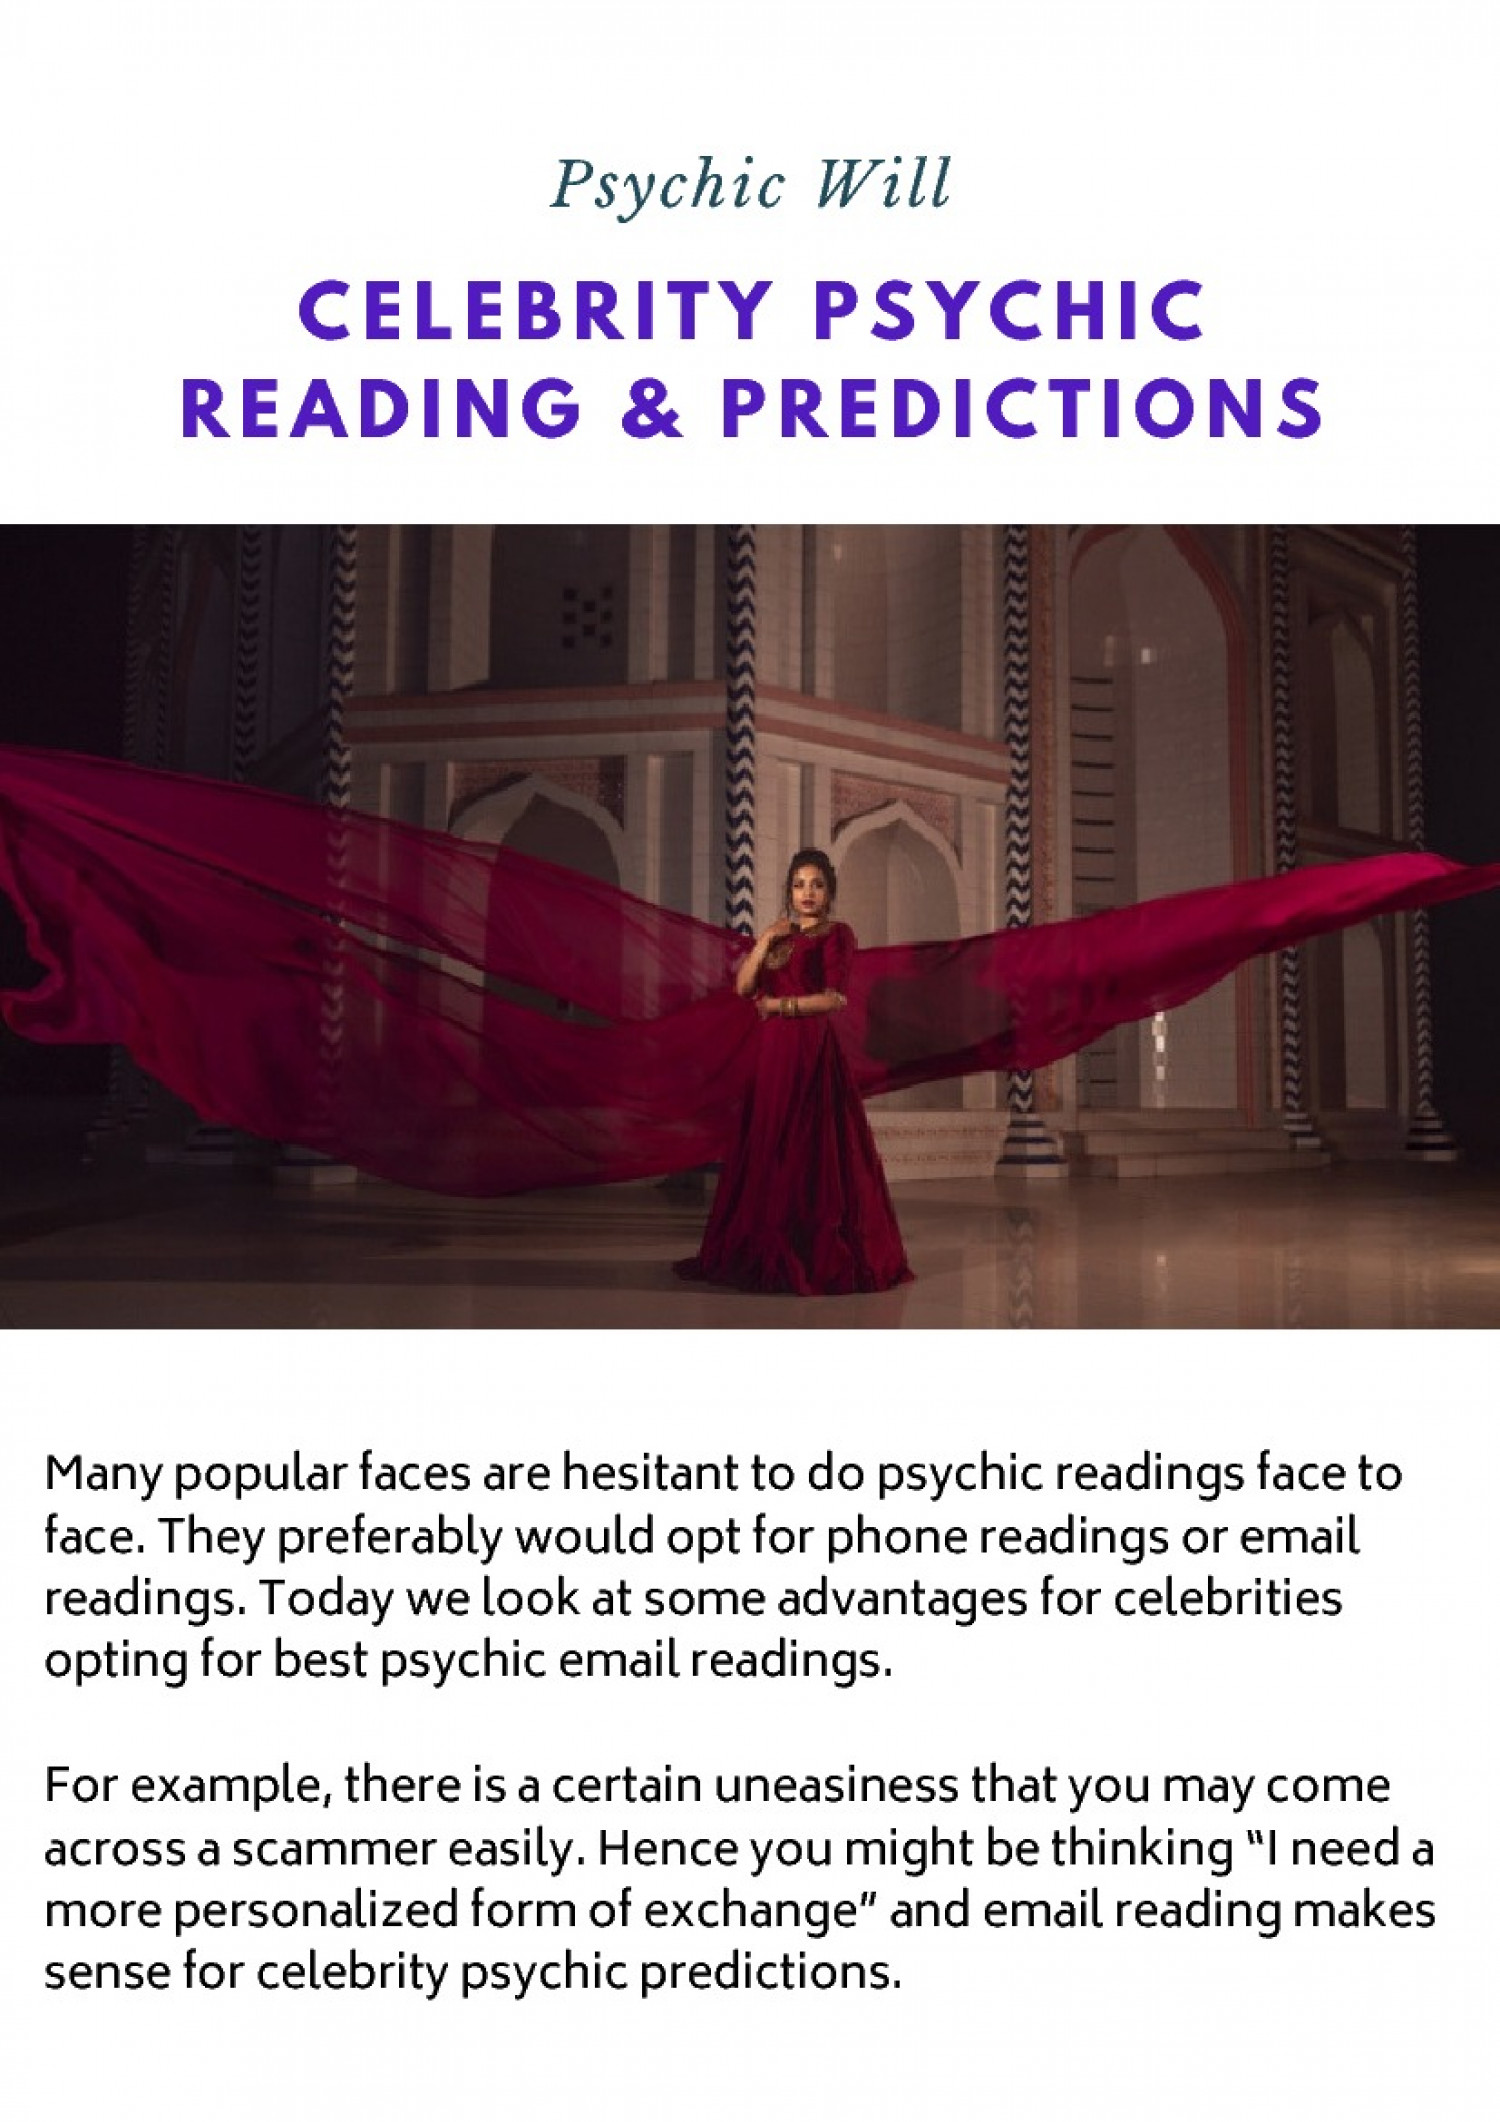 Celebrity Psychic Reading & Predictions Infographic